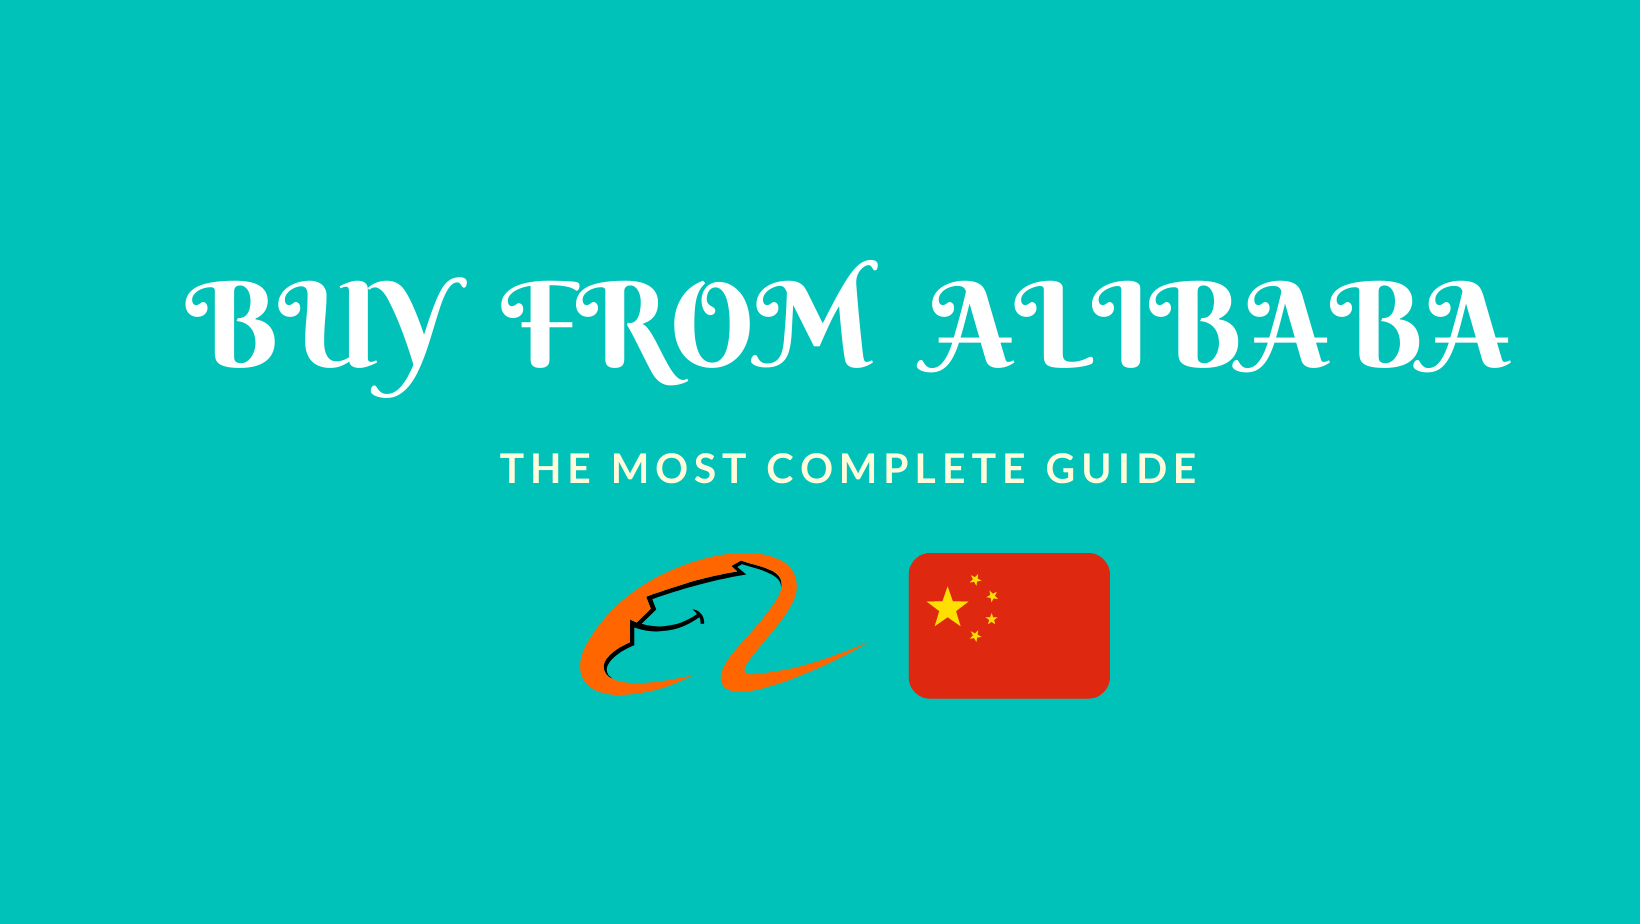 How to buy from Alibaba safely